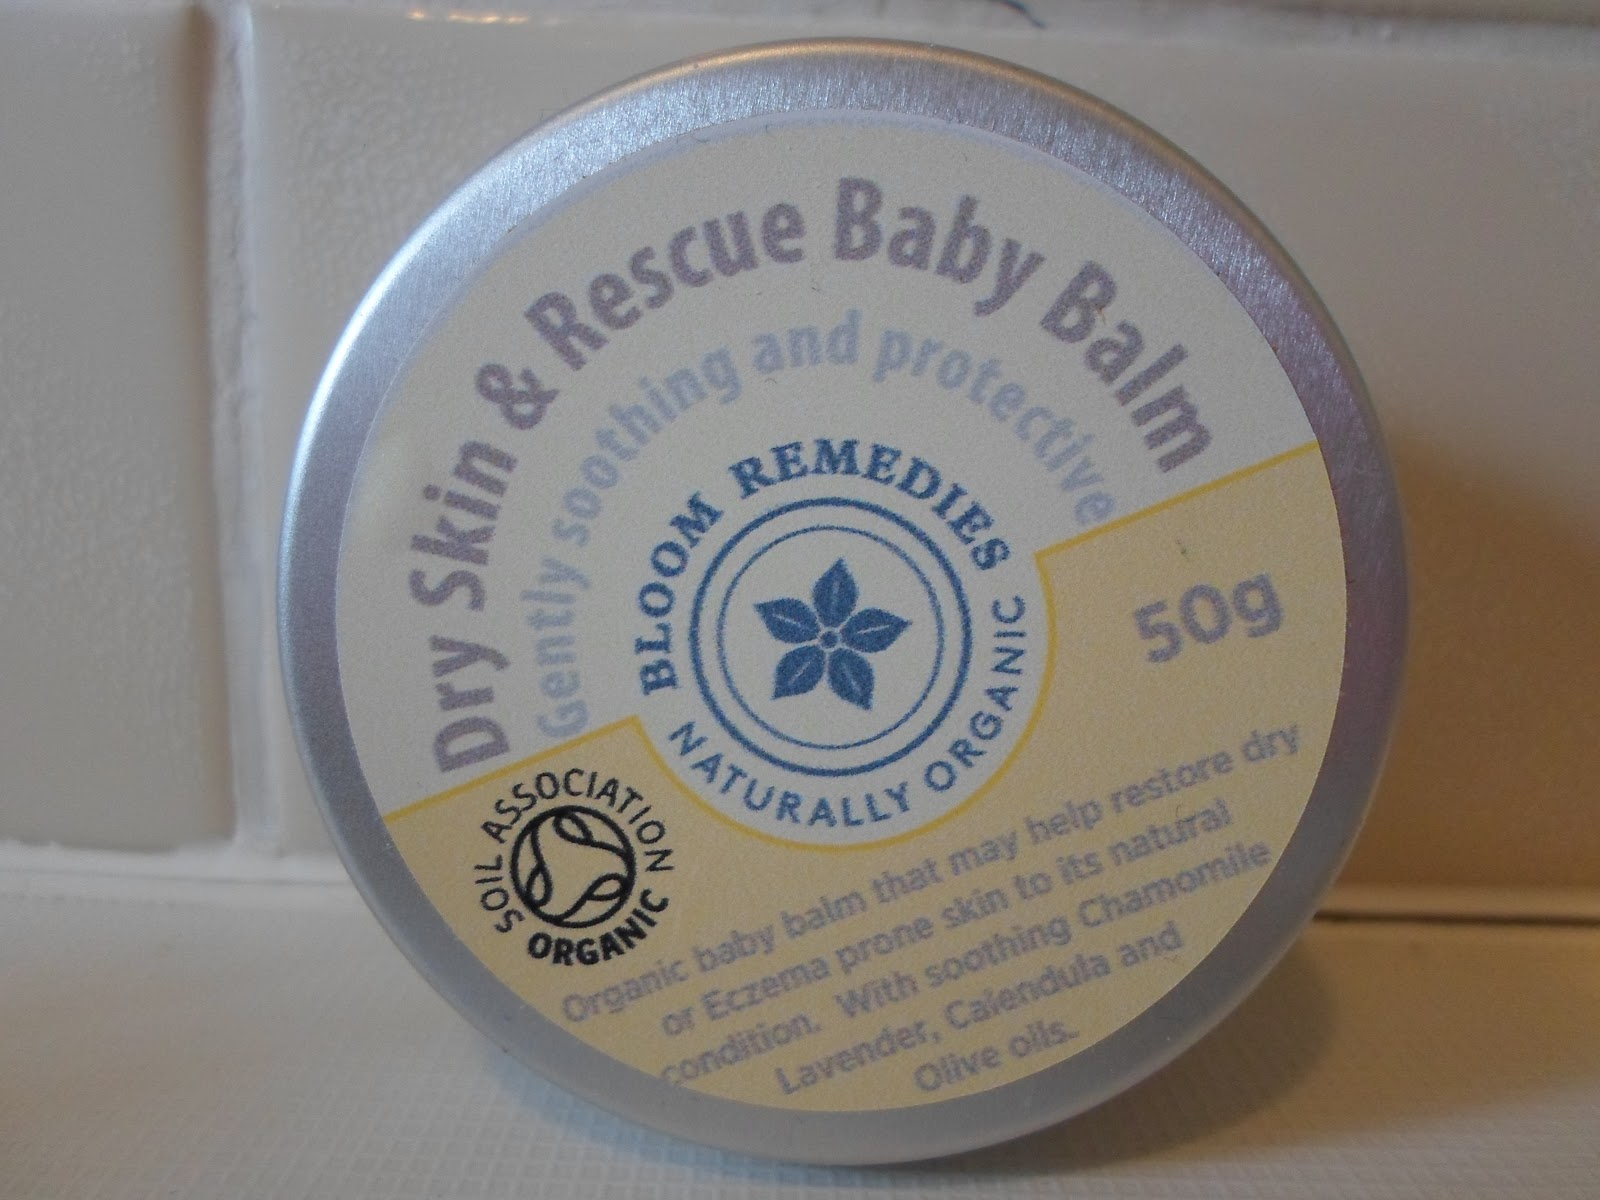 Bloom Remedies Dry Skin & Rescue Baby Balm